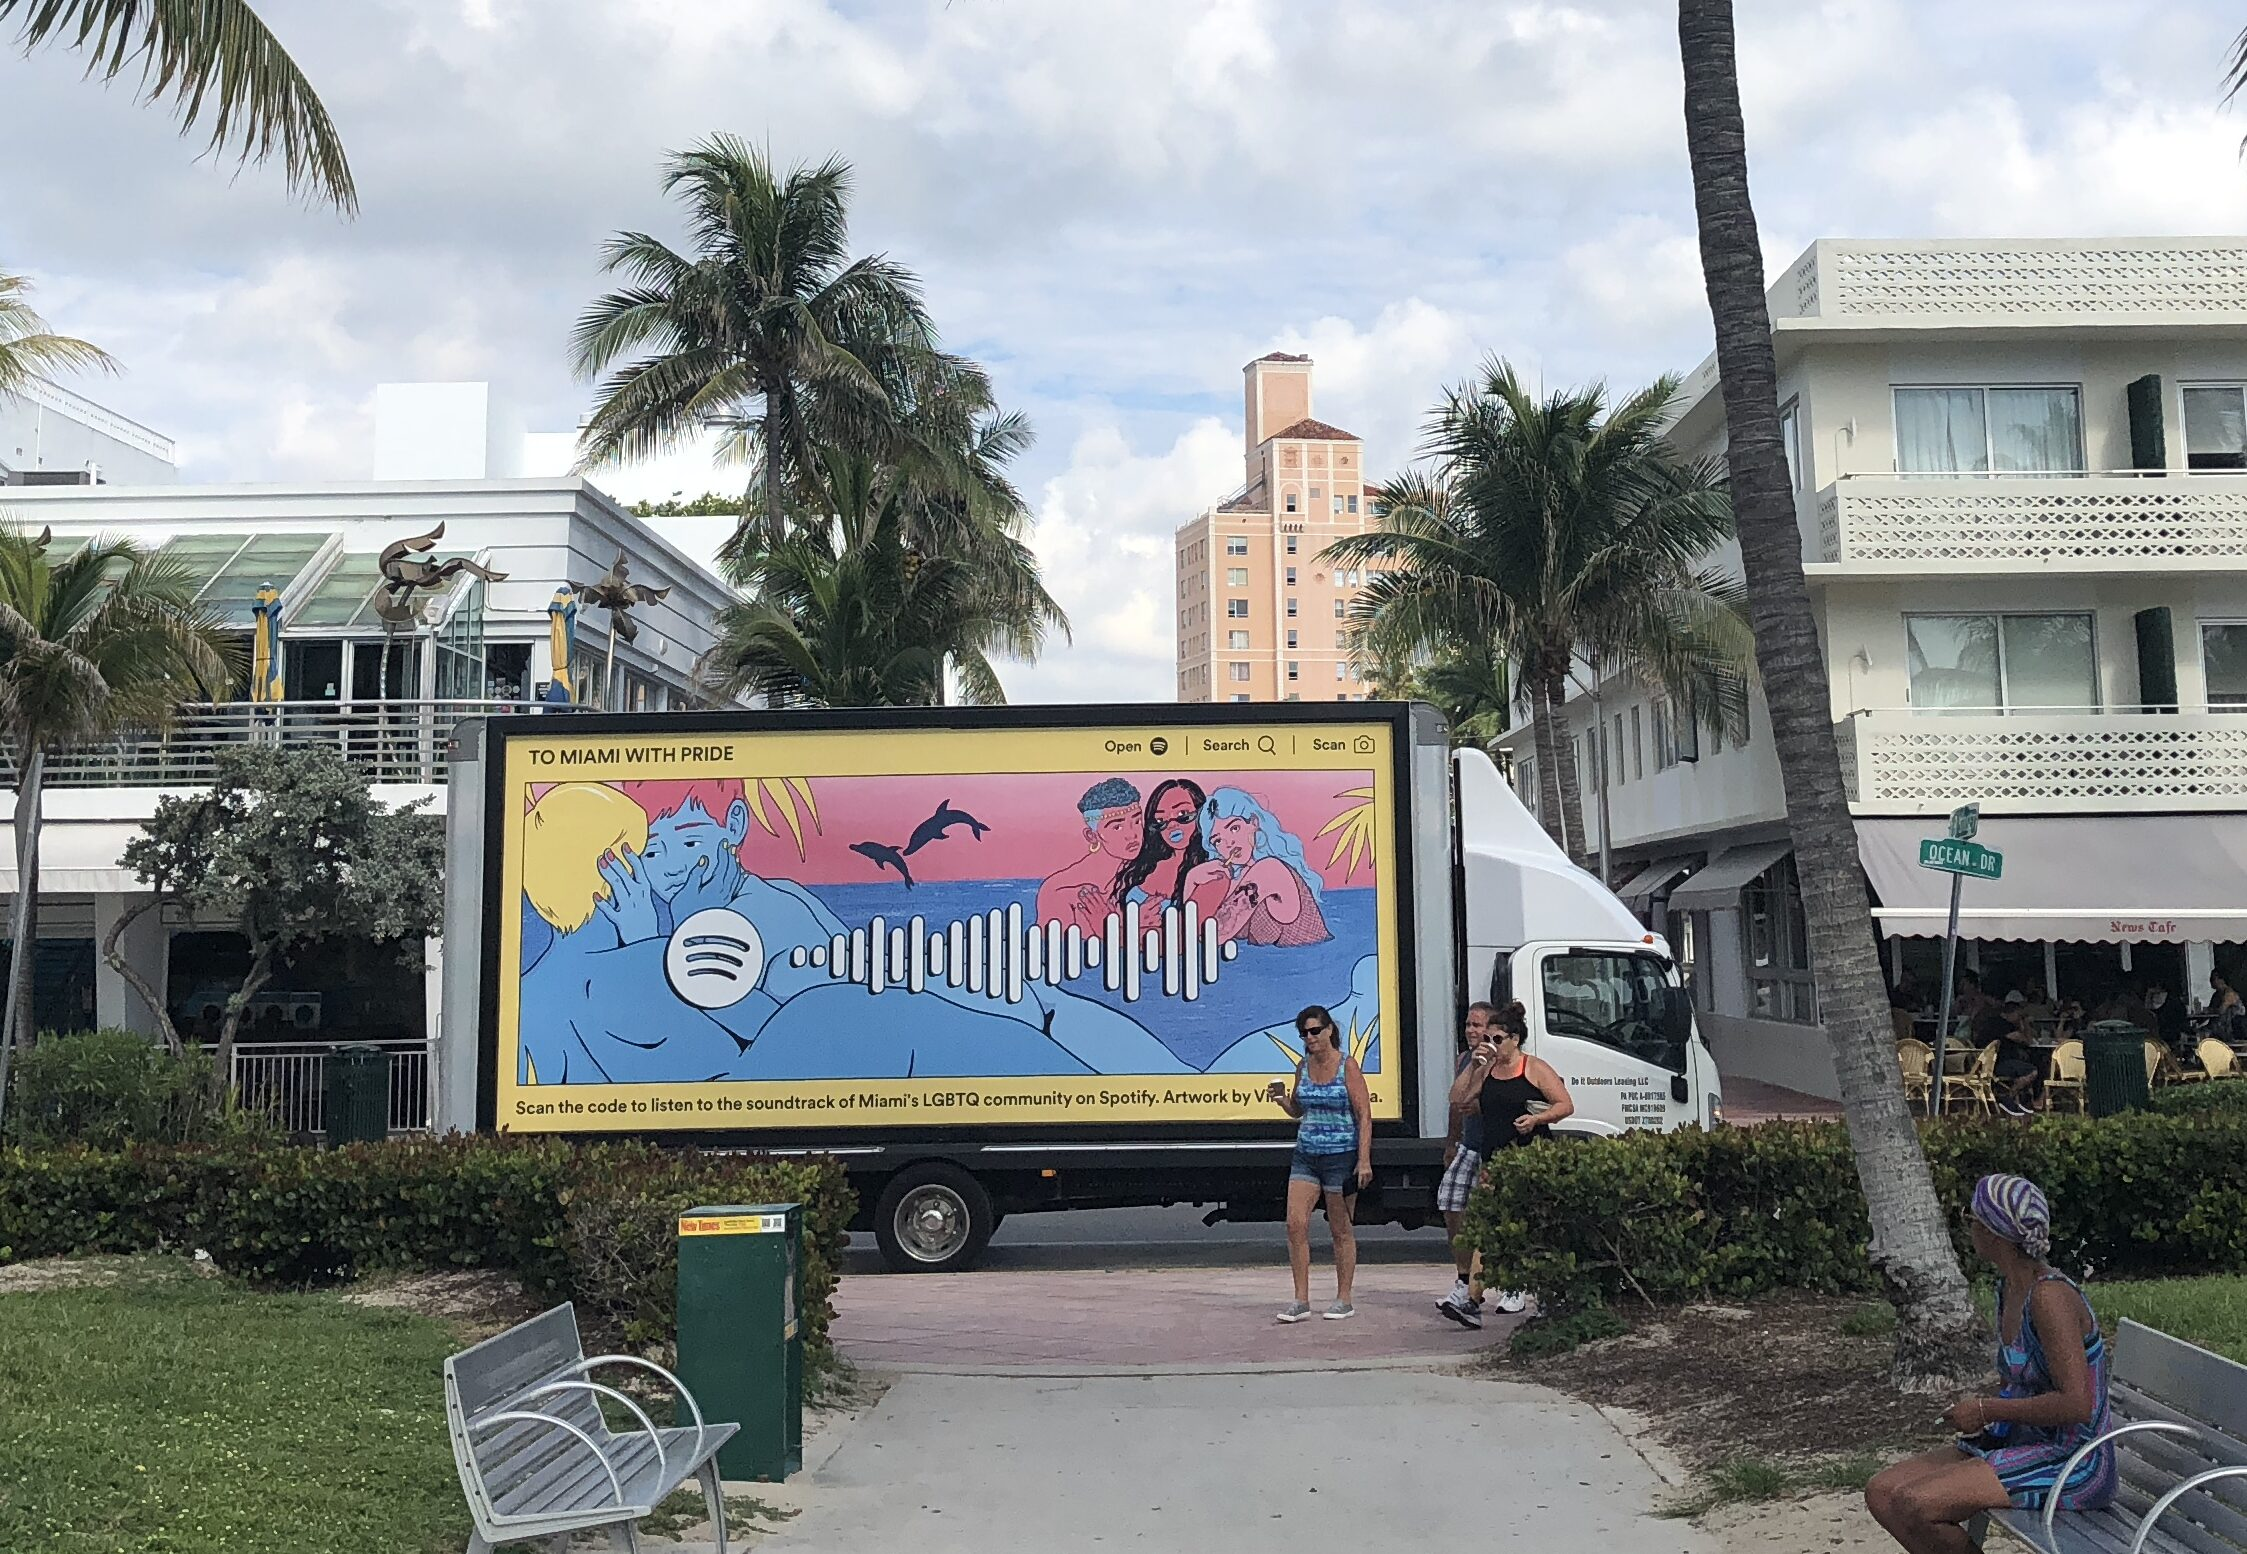 Spotify mobile billboard